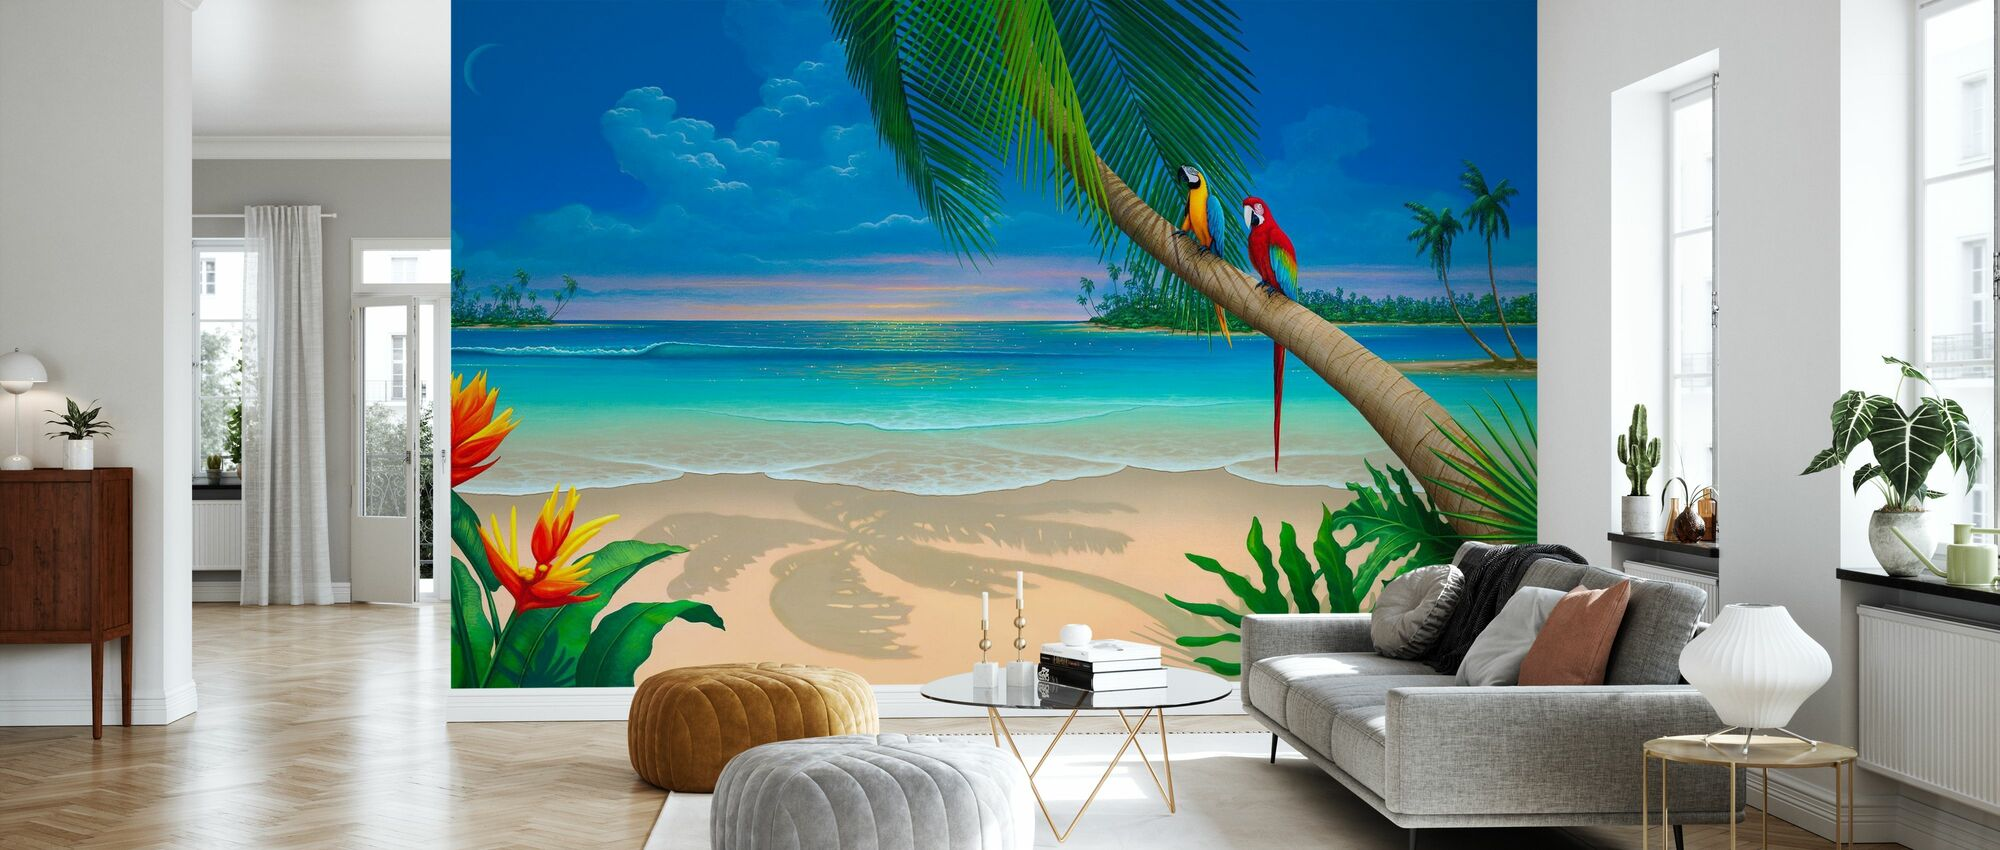 Another Perfect Day - Wallpaper - Living Room